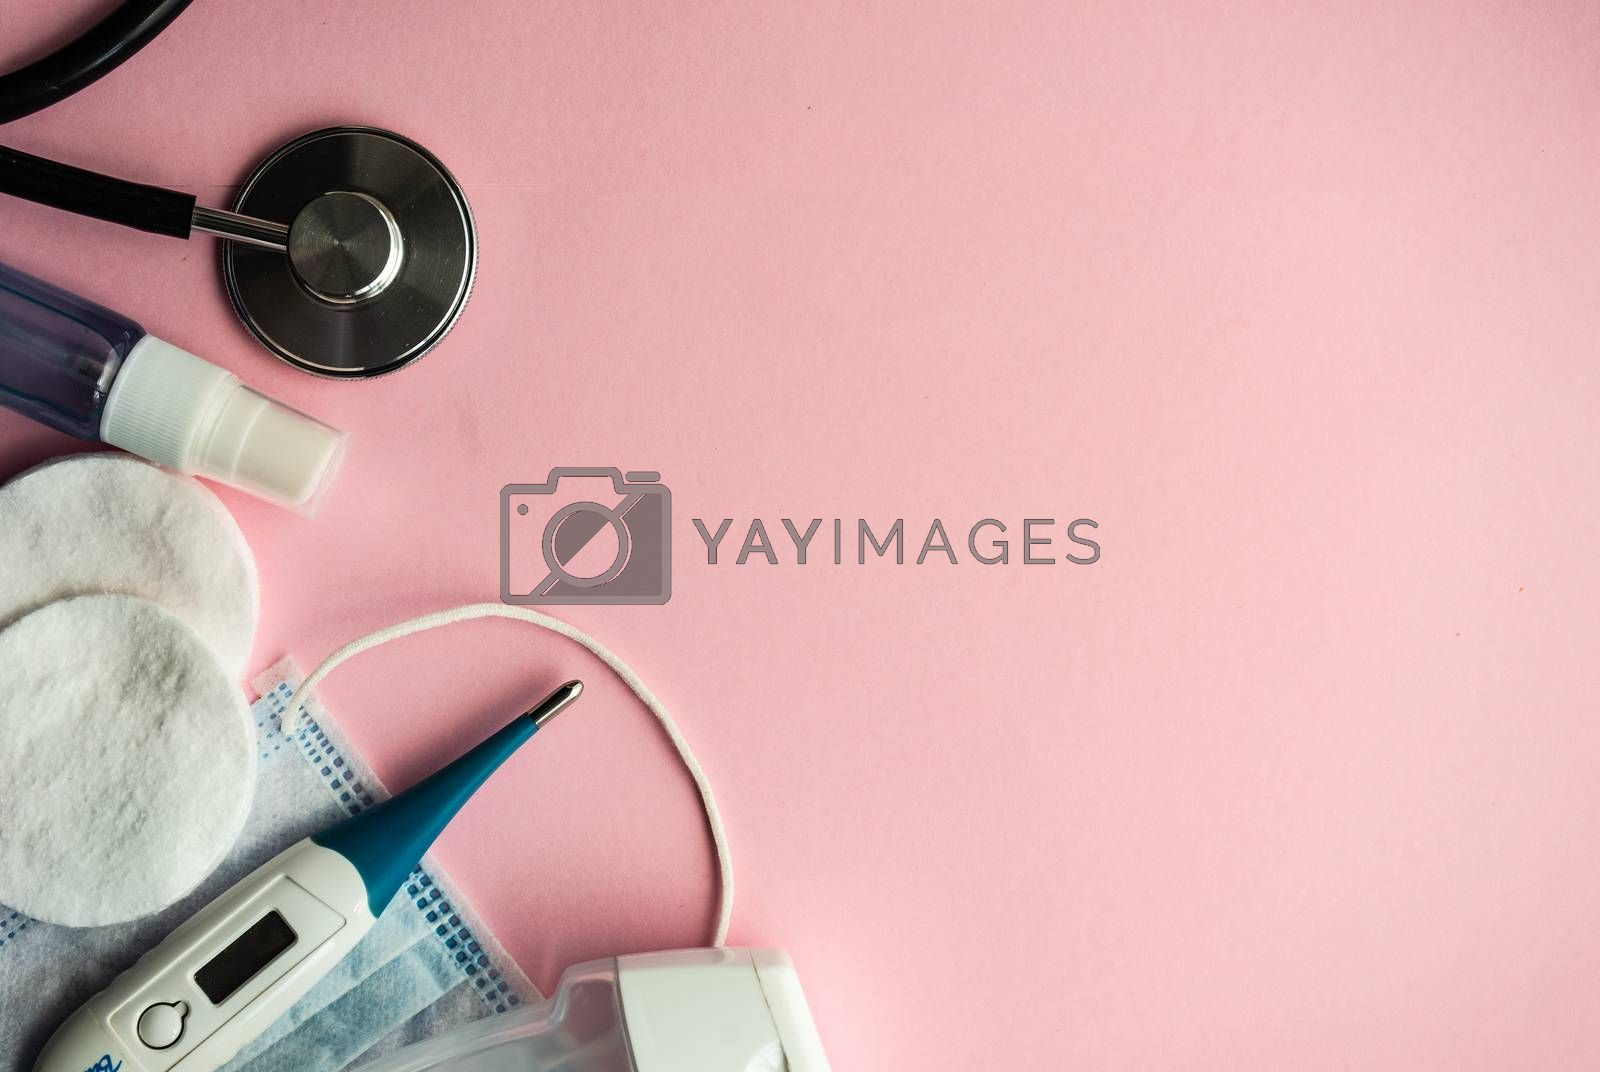 Coronavirus or Covid-19 epidemic healthcare concept on pink pastel background with copy space